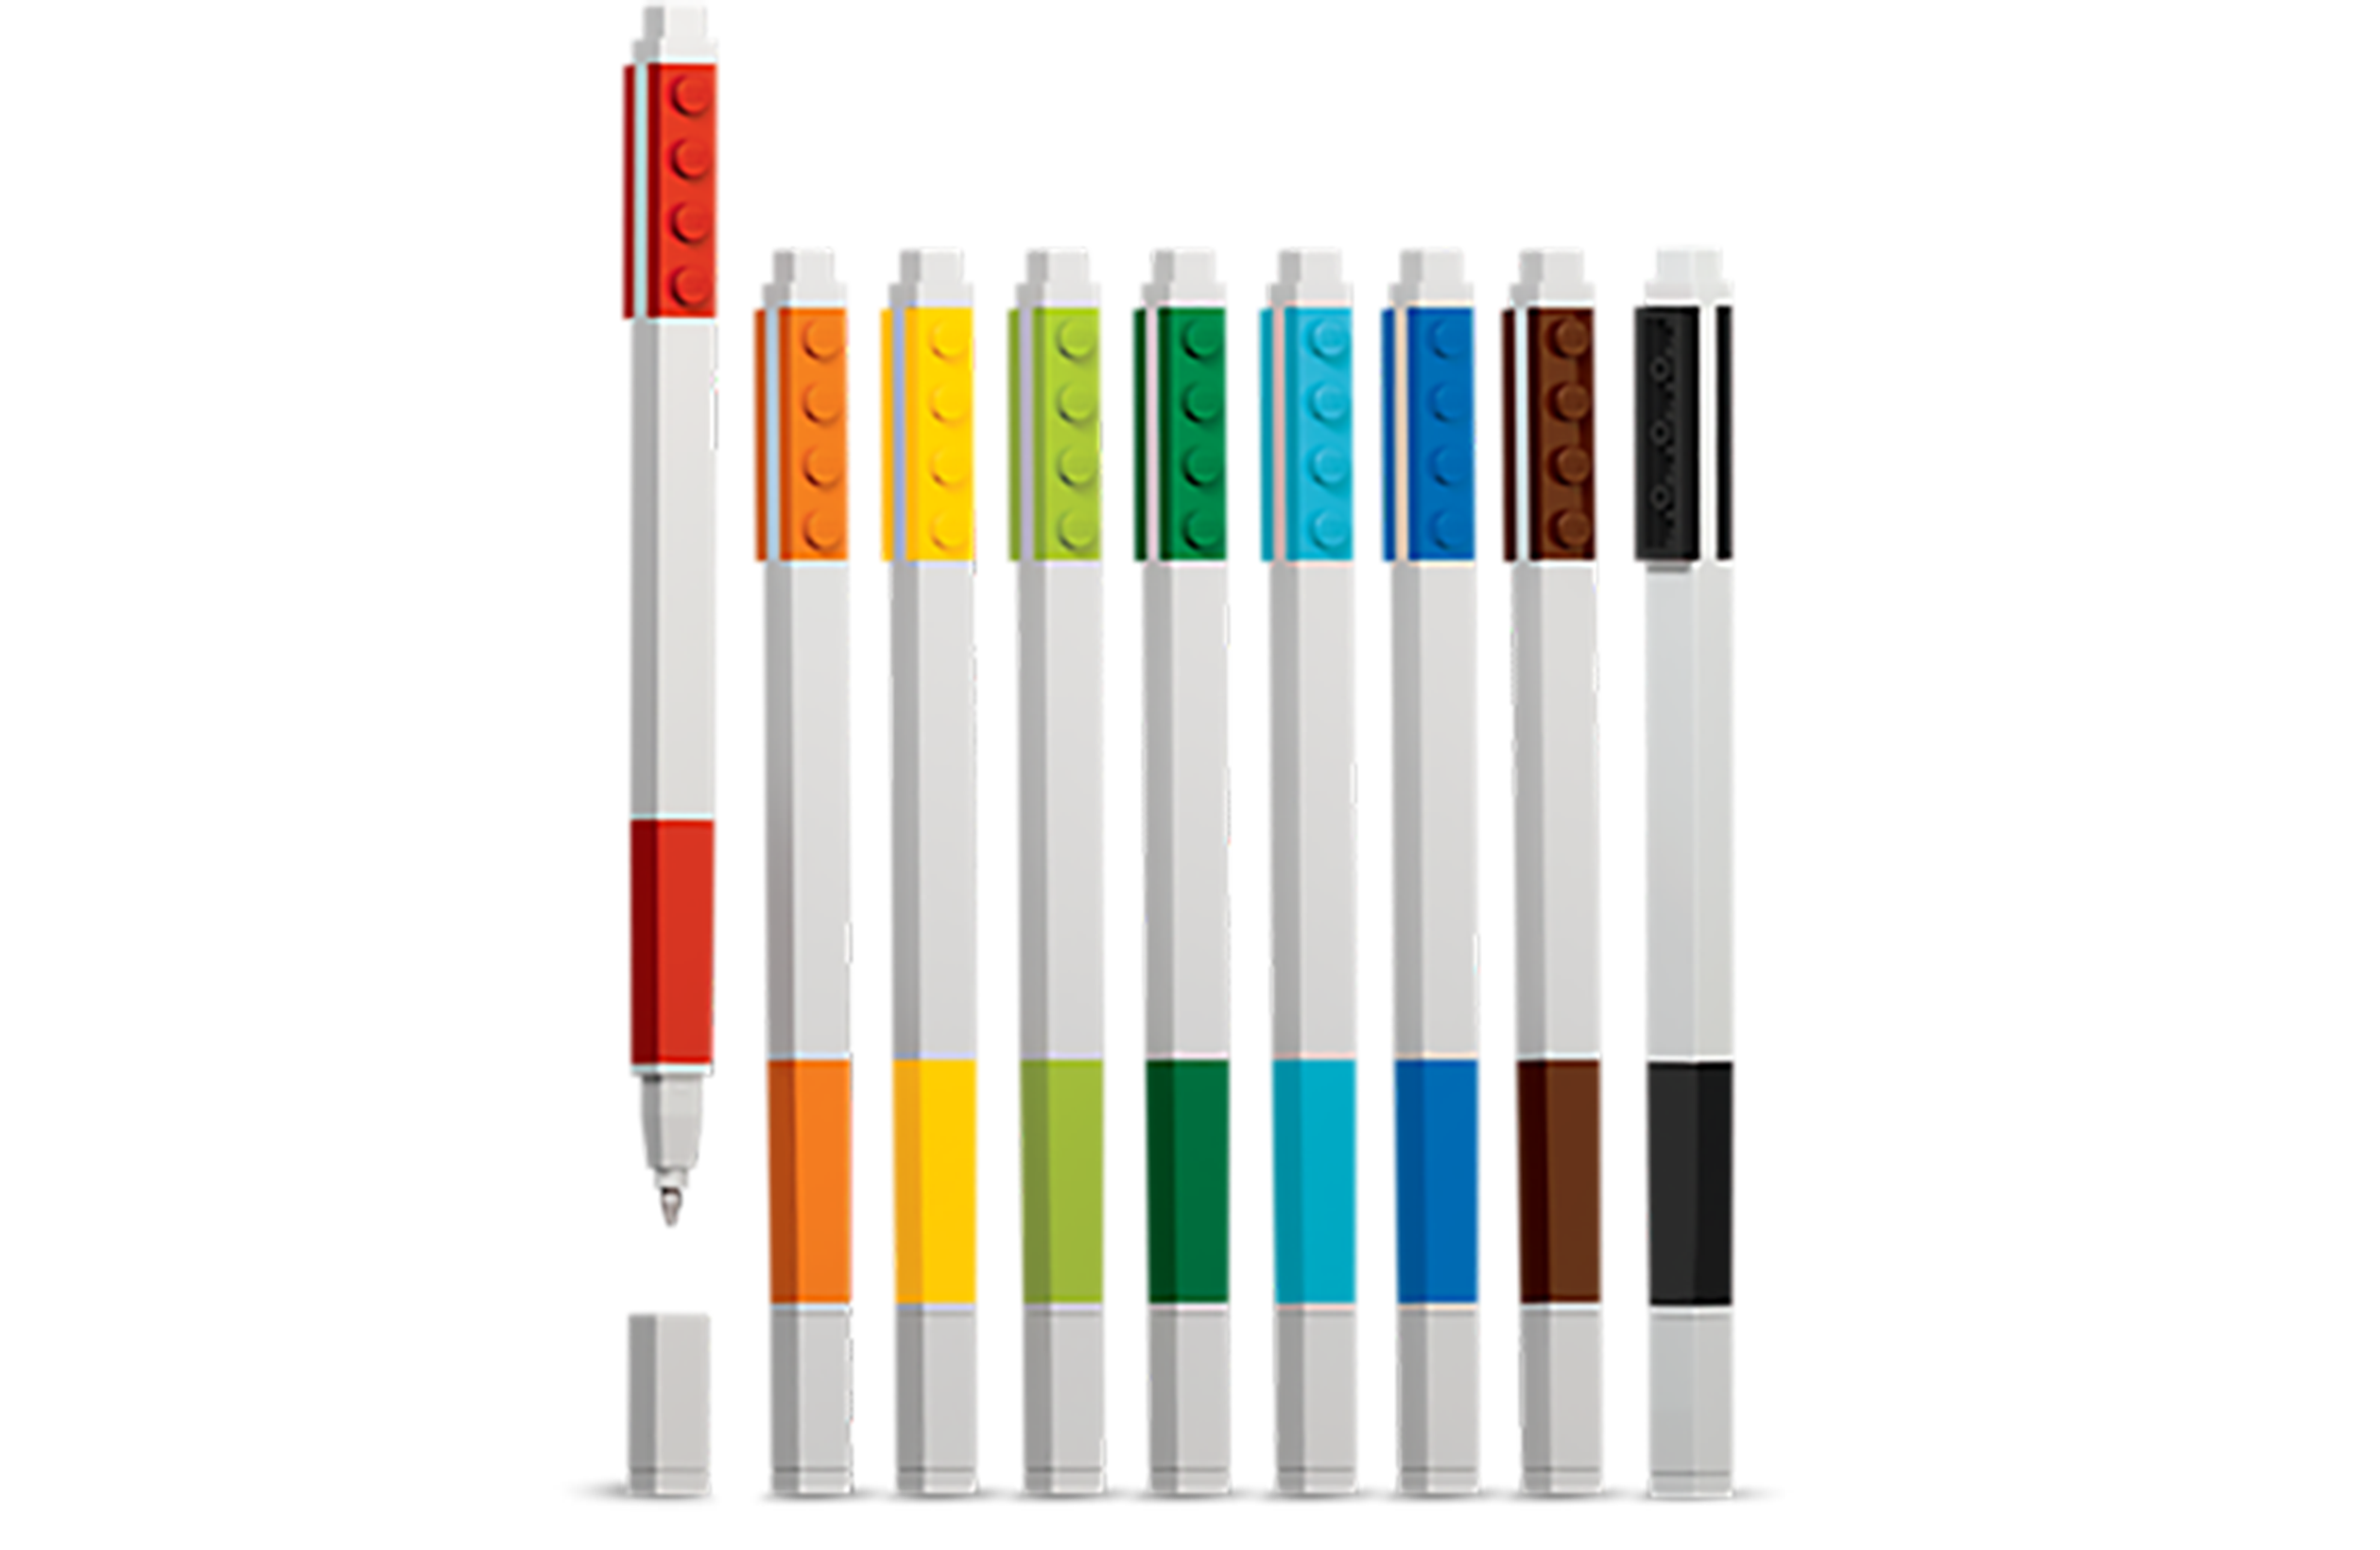 LEGO gel pens stocking filler christmas stationery